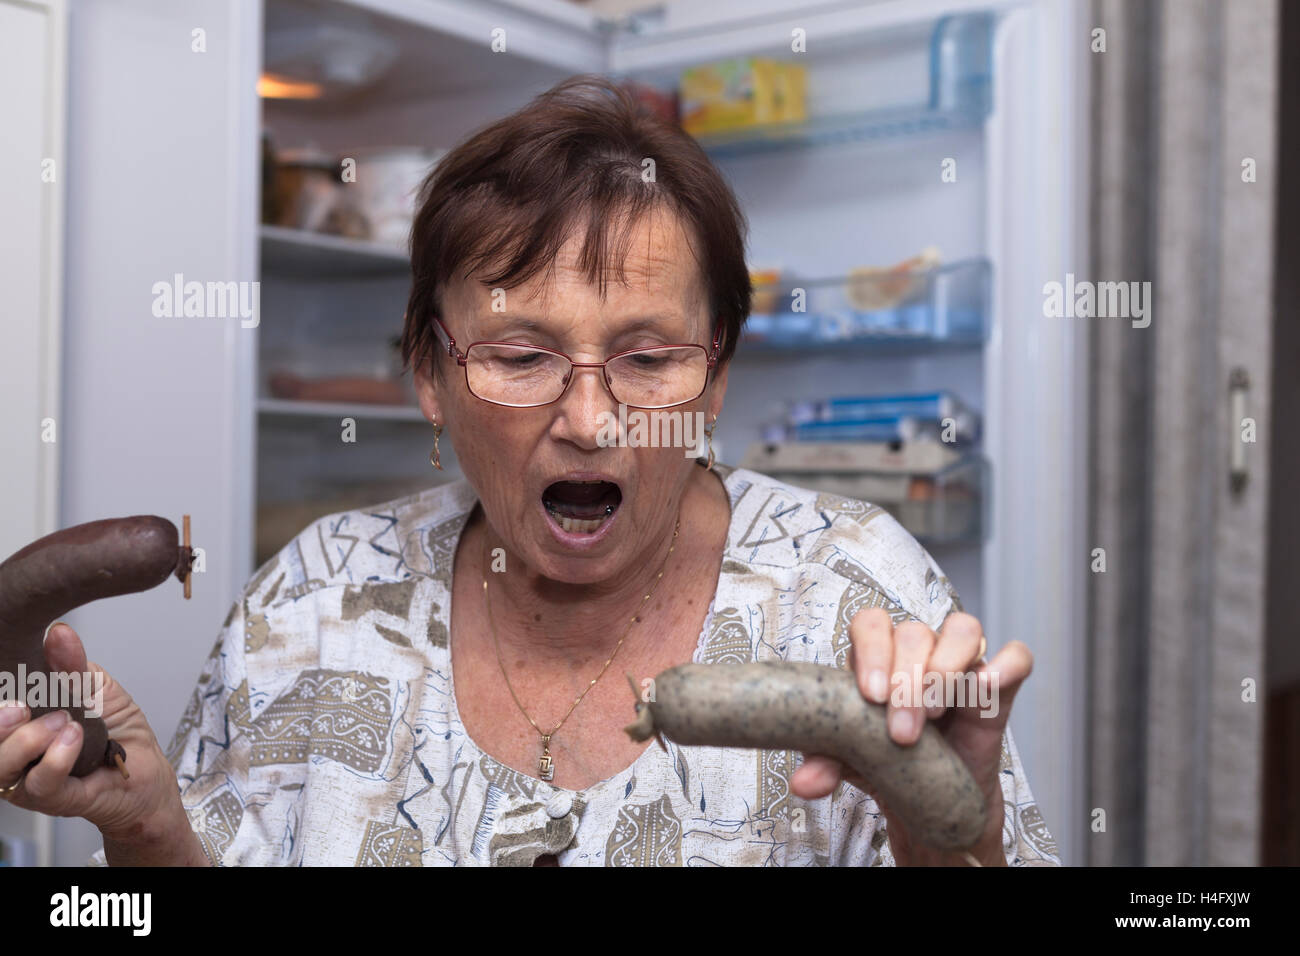 Shocked senior woman holding pork liver sausages while standing in front of the open fridge in the kitchen. - Stock Image